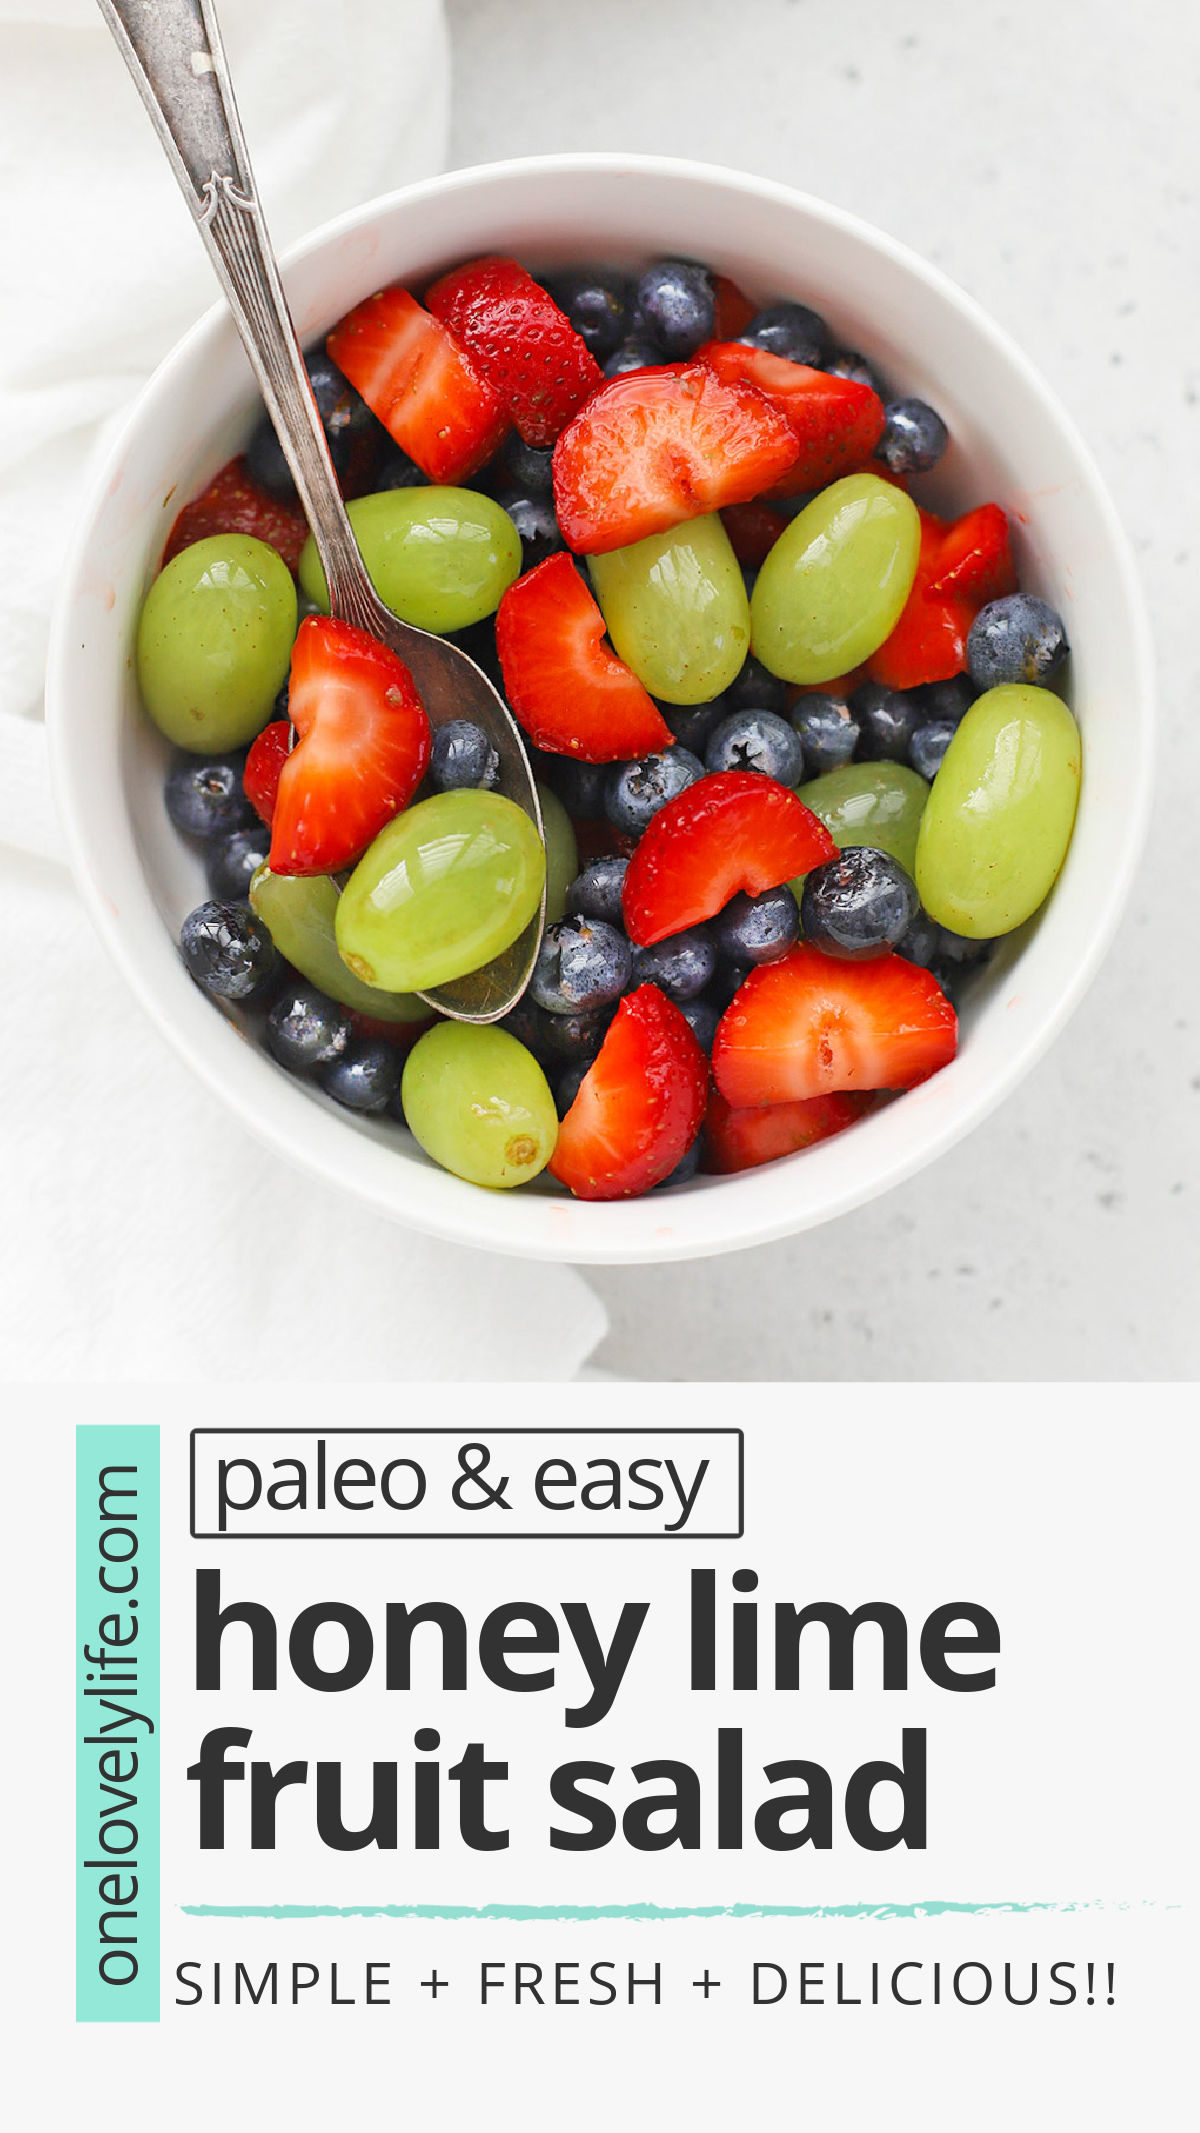 Honey Lime Fruit Salad is my favorite side dish. It's perfect for weeknight dinners, baby or wedding showers, barbecues, and more! // honey lime fruit salad recipe // healthy fruit salad // paleo fruit salad // fruit salad recipe // honey lime dressing #fruitsalad #honeylime #potluck #picnic #barbecue #sidedish #brunch #paleo